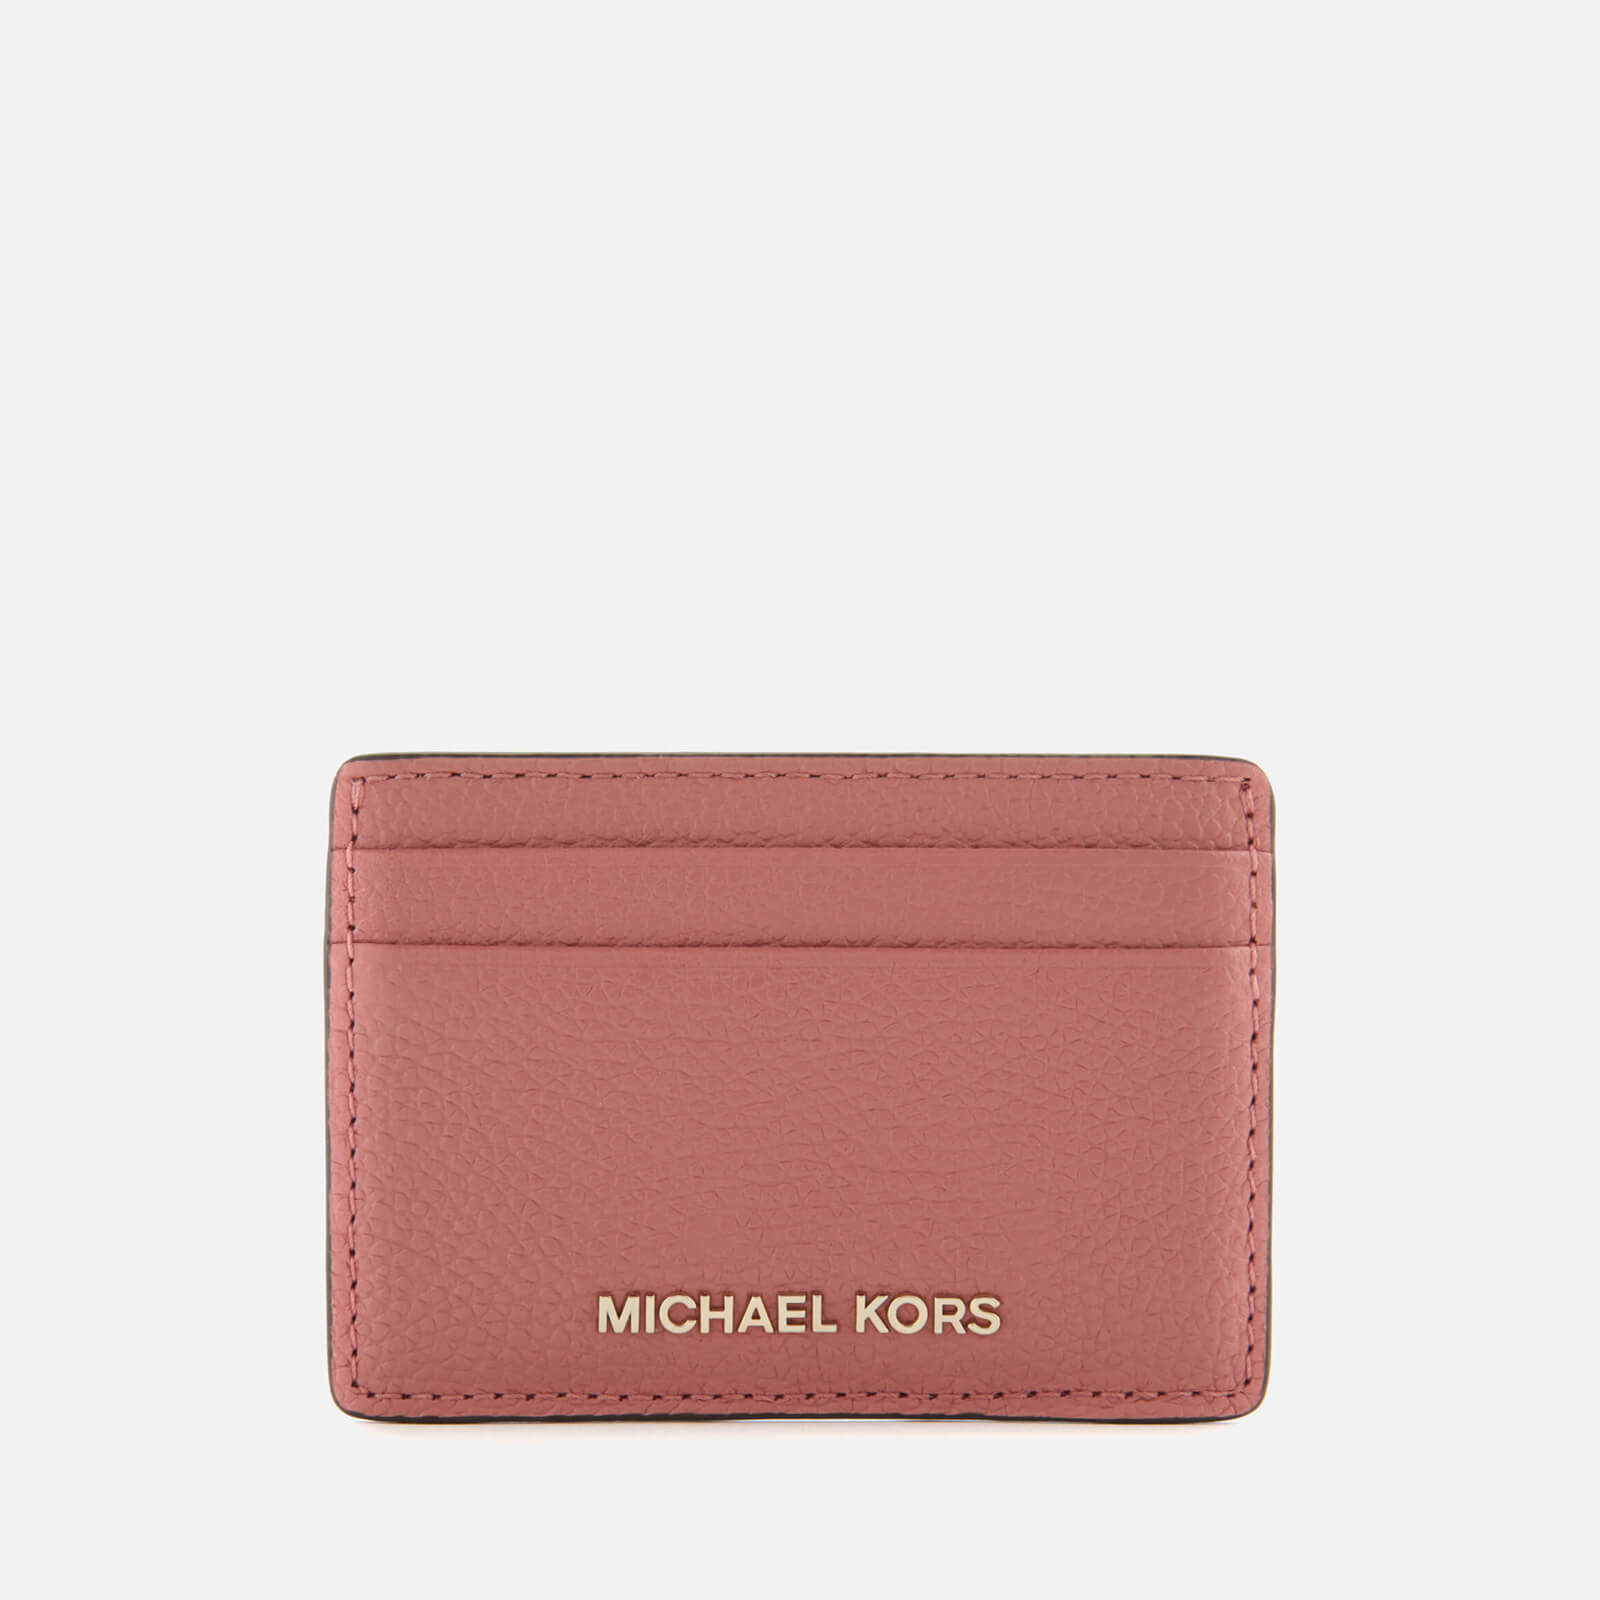 3747429fa0e2 MICHAEL MICHAEL KORS Women s Money Pieces Card Holder - Rose - Free UK  Delivery over £50